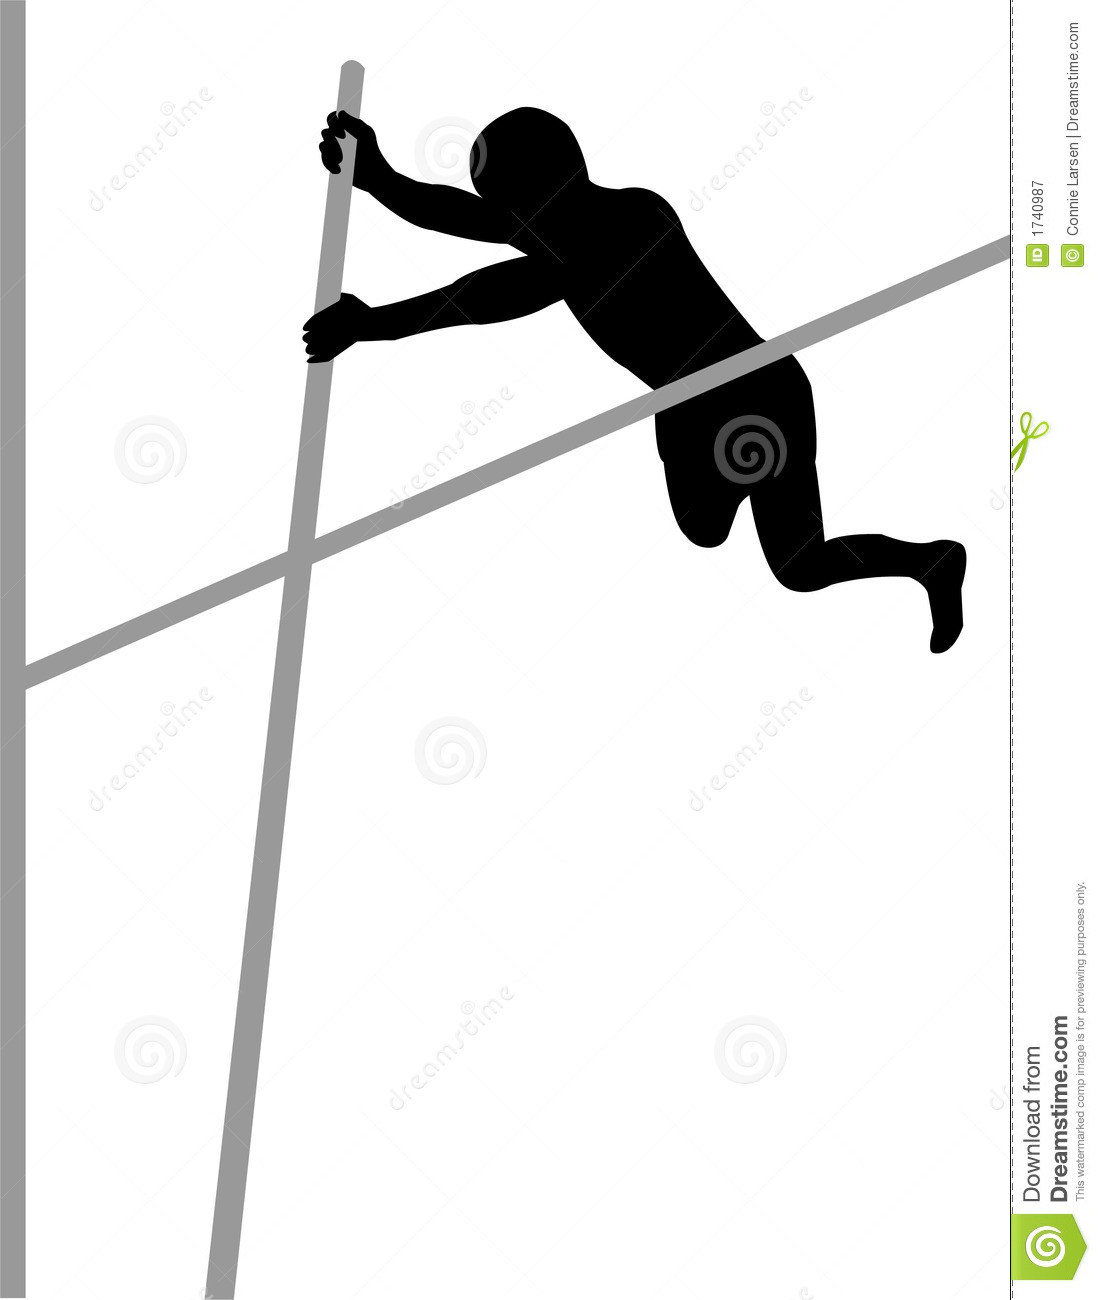 Pole vault clipart free png stock Pole Vaulter Royalty Free Stock Photography - Image: 1740987 png stock